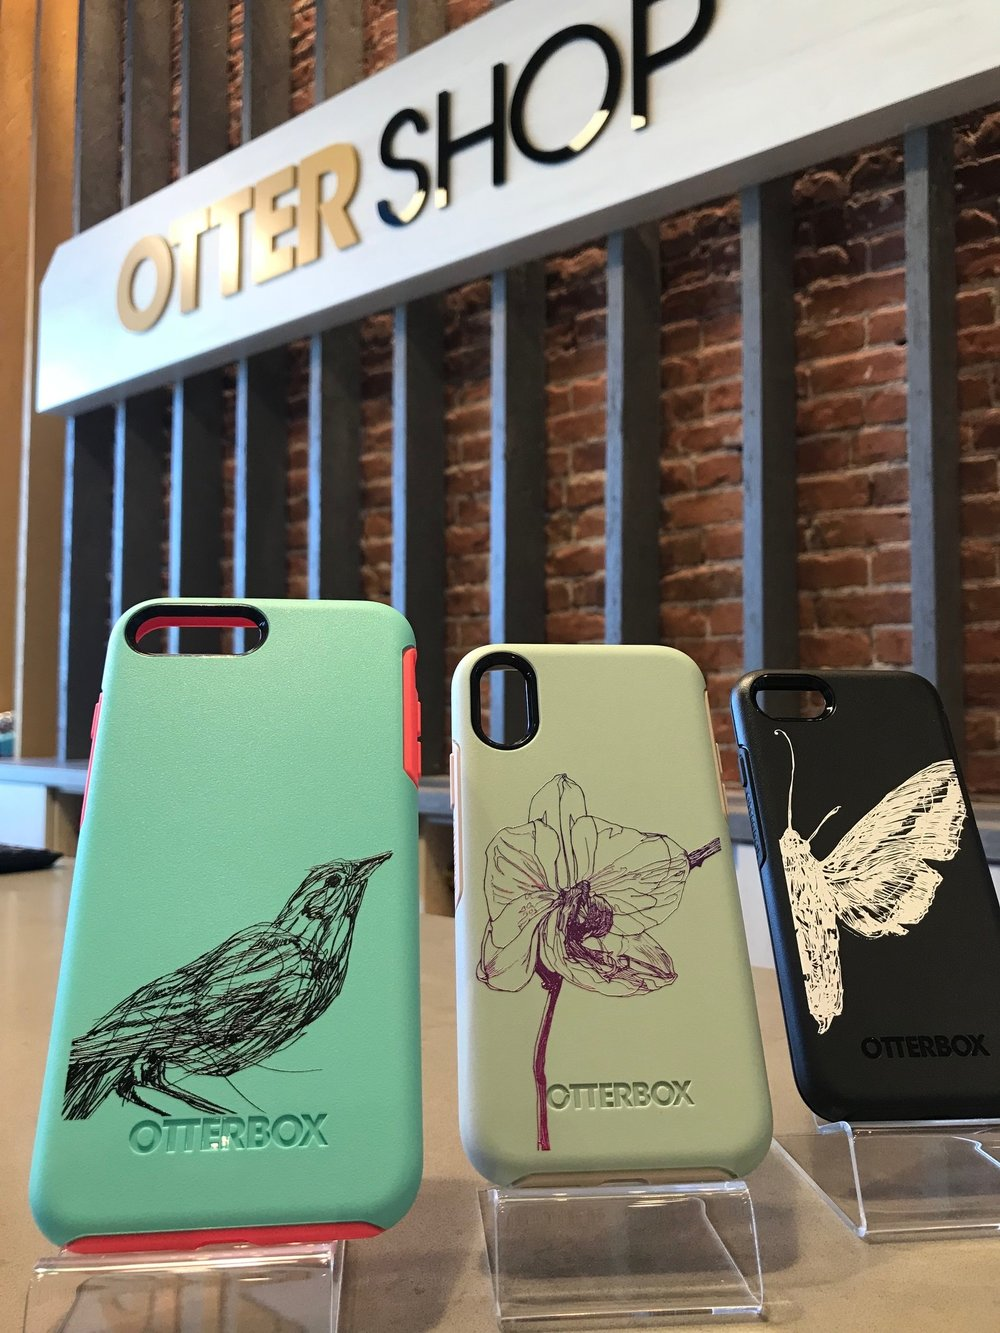 Three drawings by Melissa Carmon on Otterbox cases